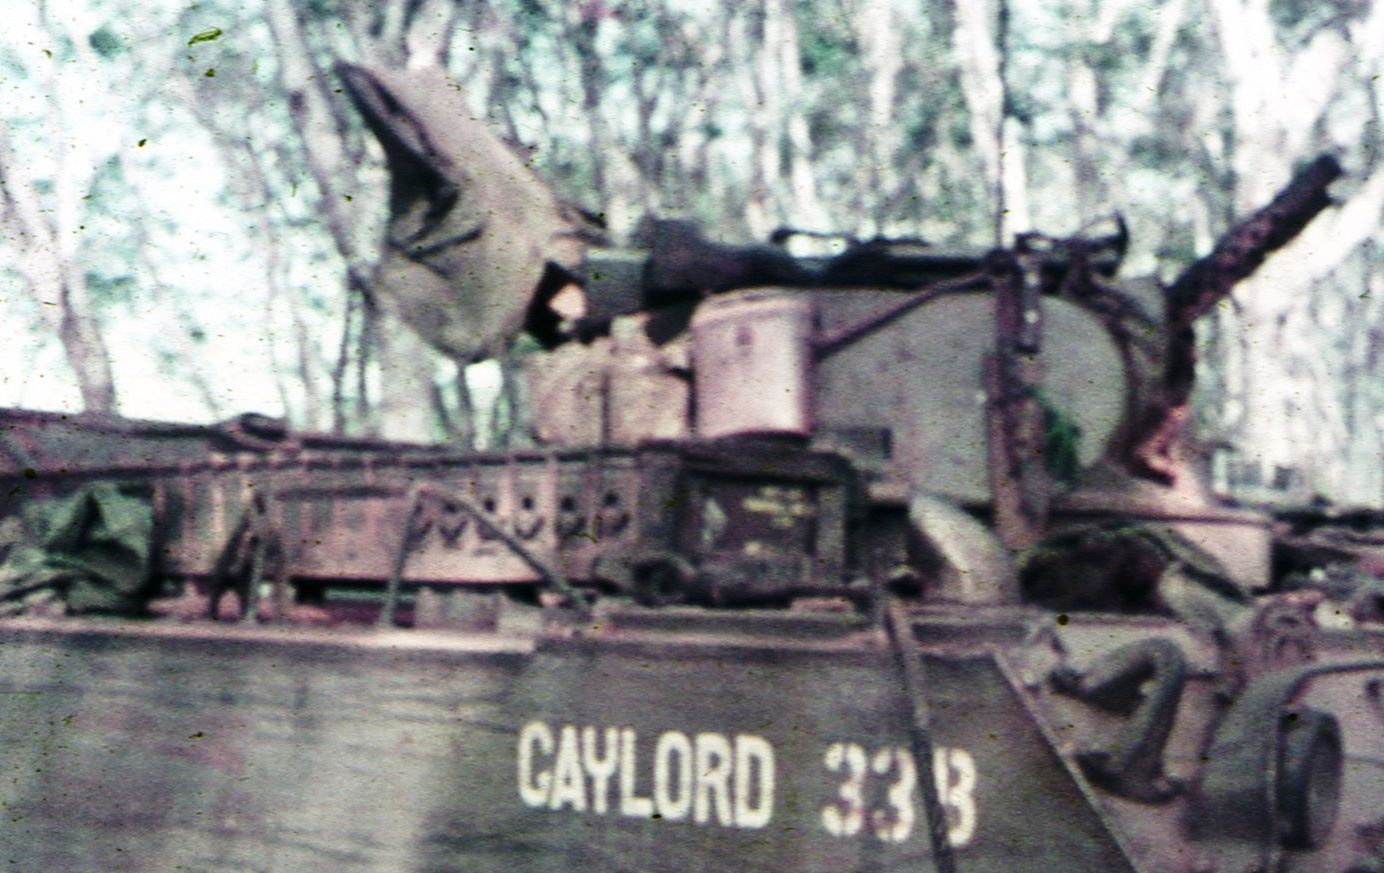 Graeme Merkels APC turret with two 30 cal machineguns on right and his flak jacket draped over the turret hatch.  Graeme would have been standing in the turret exposed to be able to fire his weapon [G Merkel]